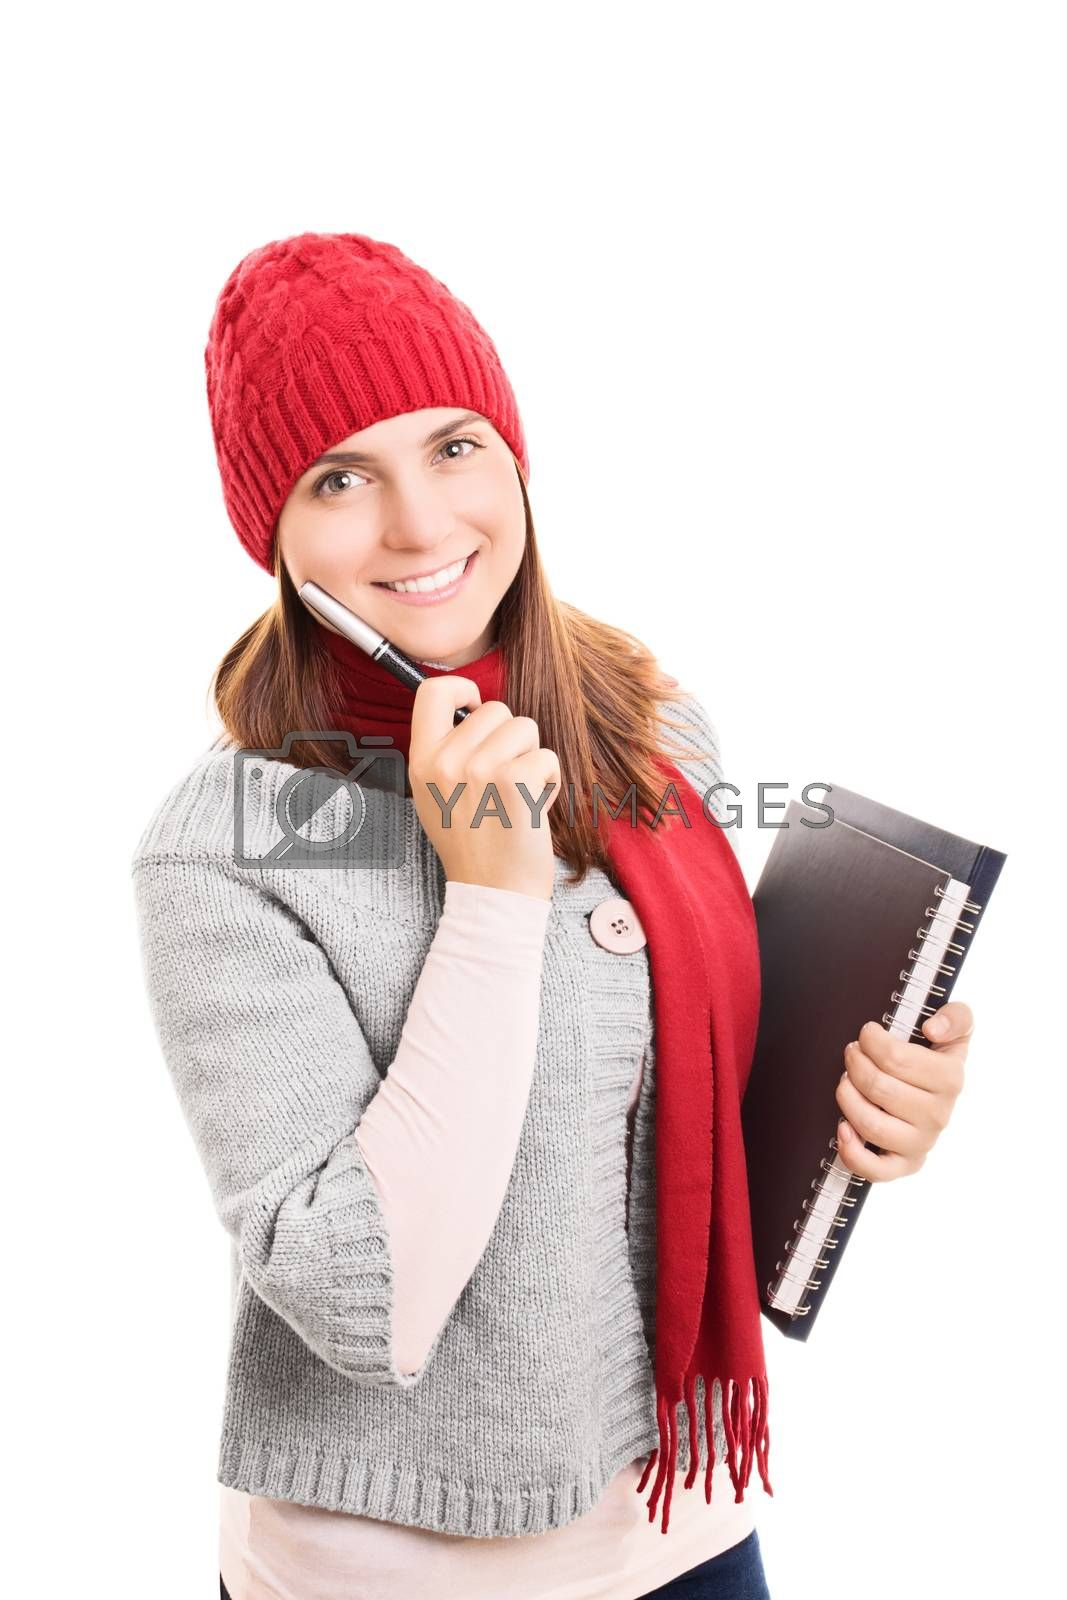 Portrait of a beautiful smiling female student in winter clothes holding a pen and notebooks, isolated on white background.